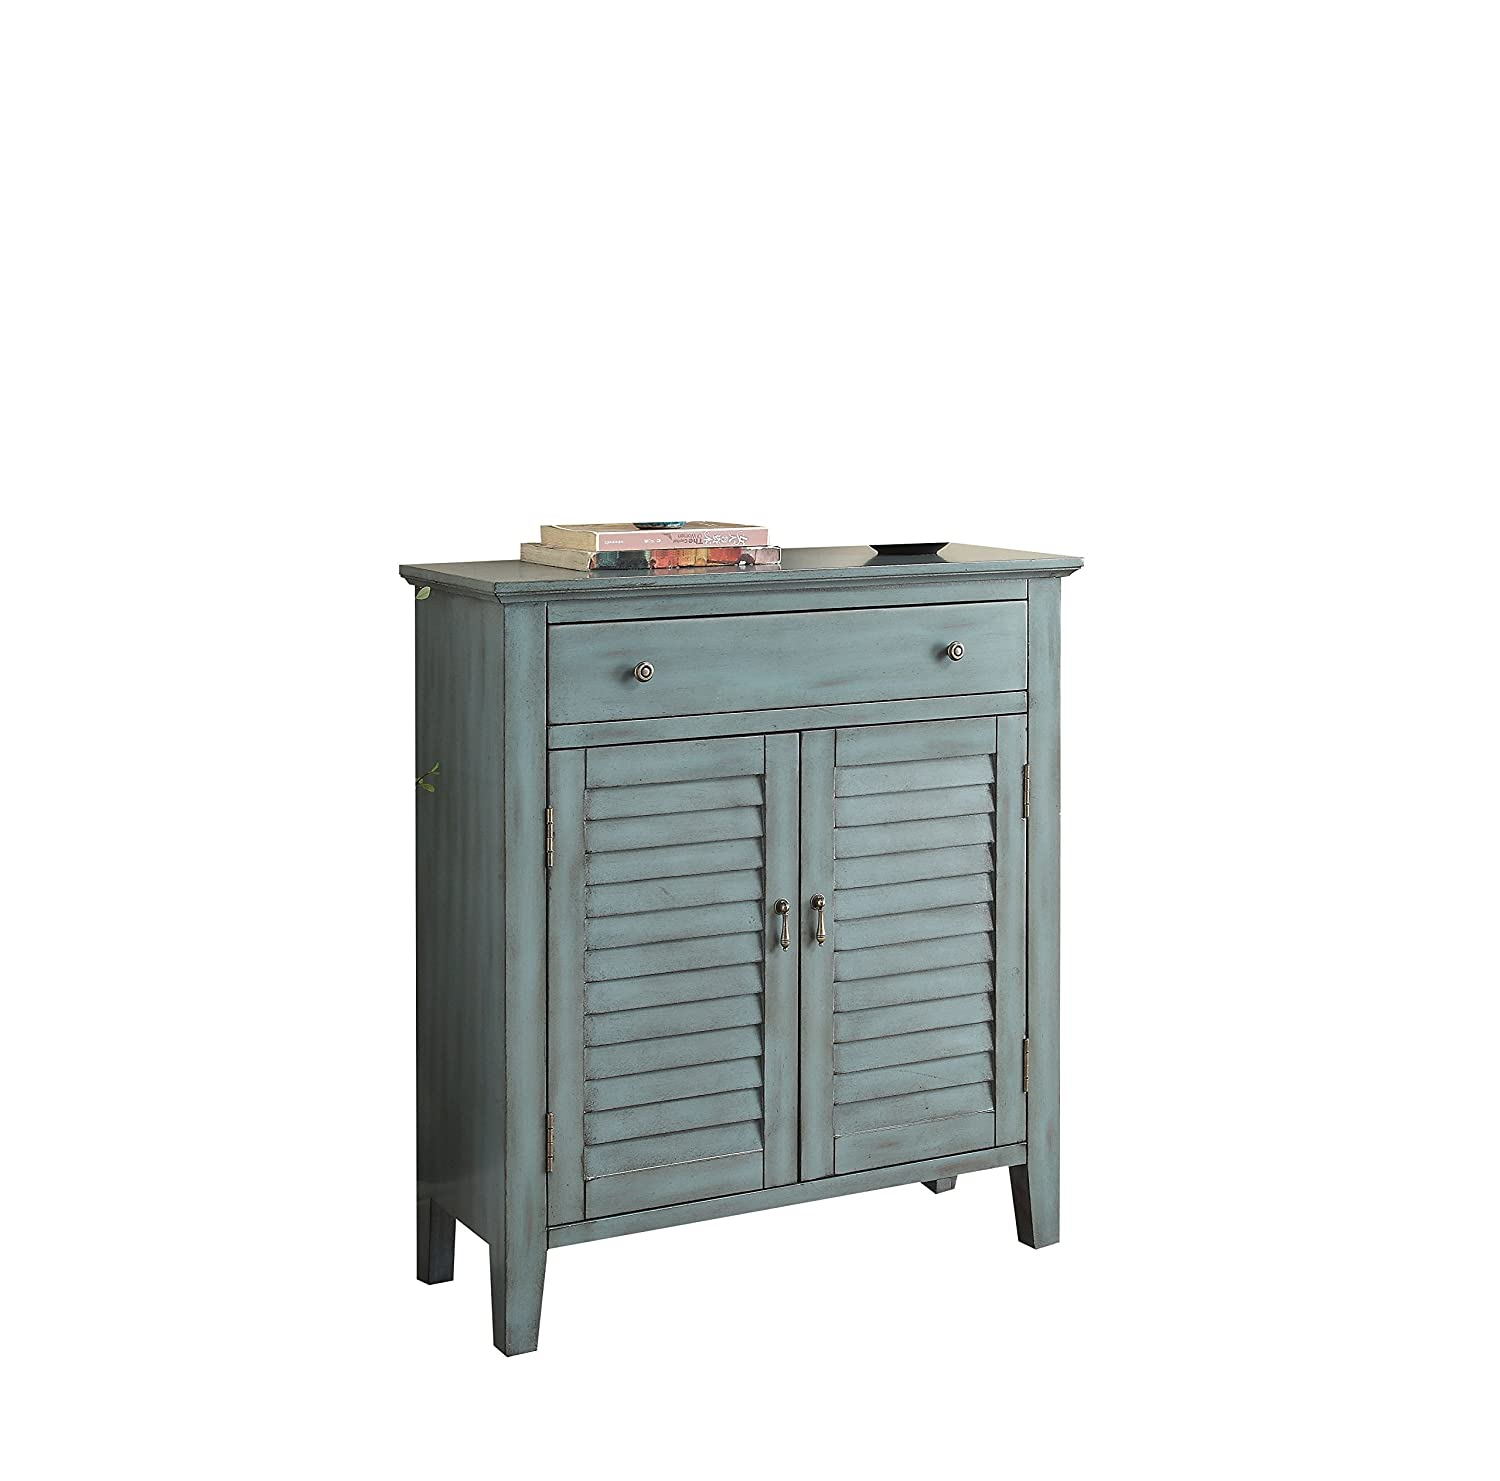 ACME Furniture AC-97247 sofa & console tables One Size Antique Blue